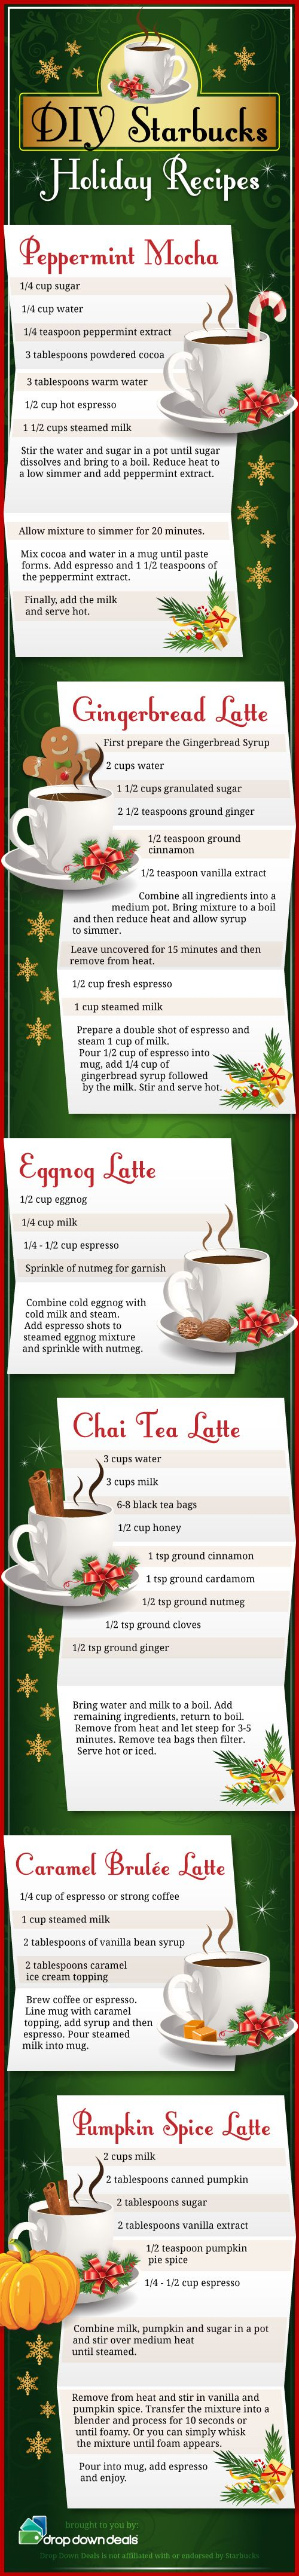 Starbucks holiday drink recipes perfect for a cold winter night at home...for those of you who like coffee.